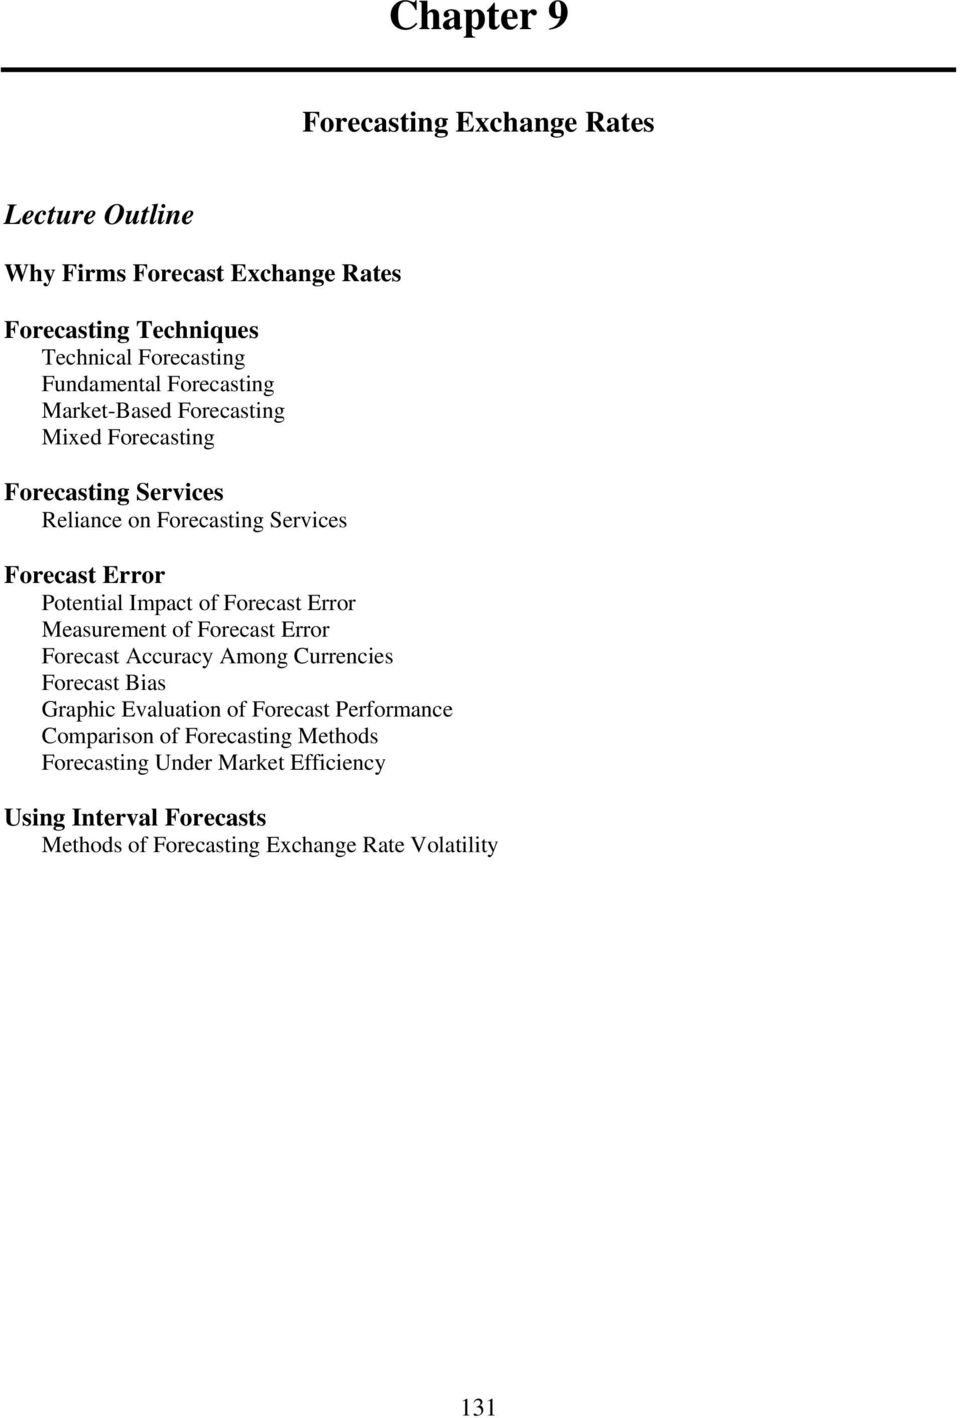 Potential Impact of Forecast Error Measurement of Forecast Error Forecast Accuracy Among Currencies Forecast Bias Graphic Evaluation of